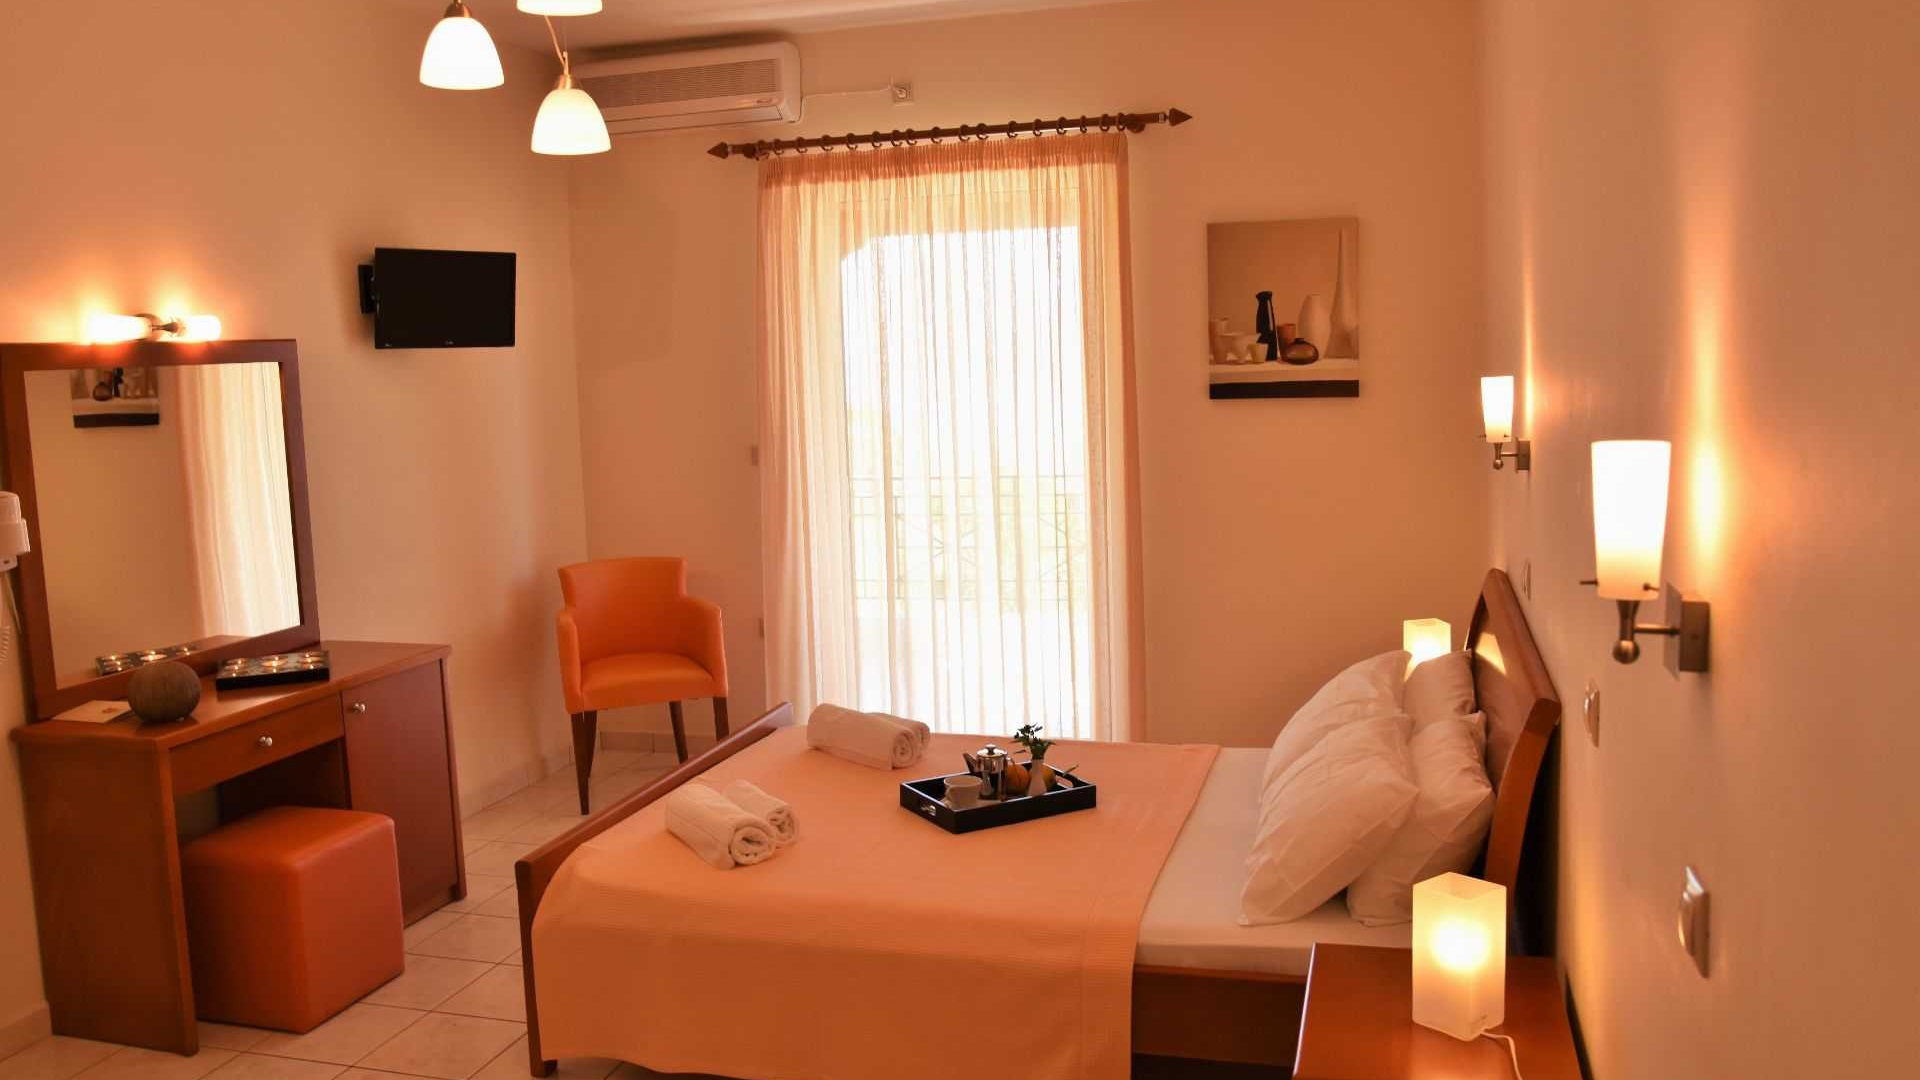 Rooms and Studios, Tyros, Peloponnese